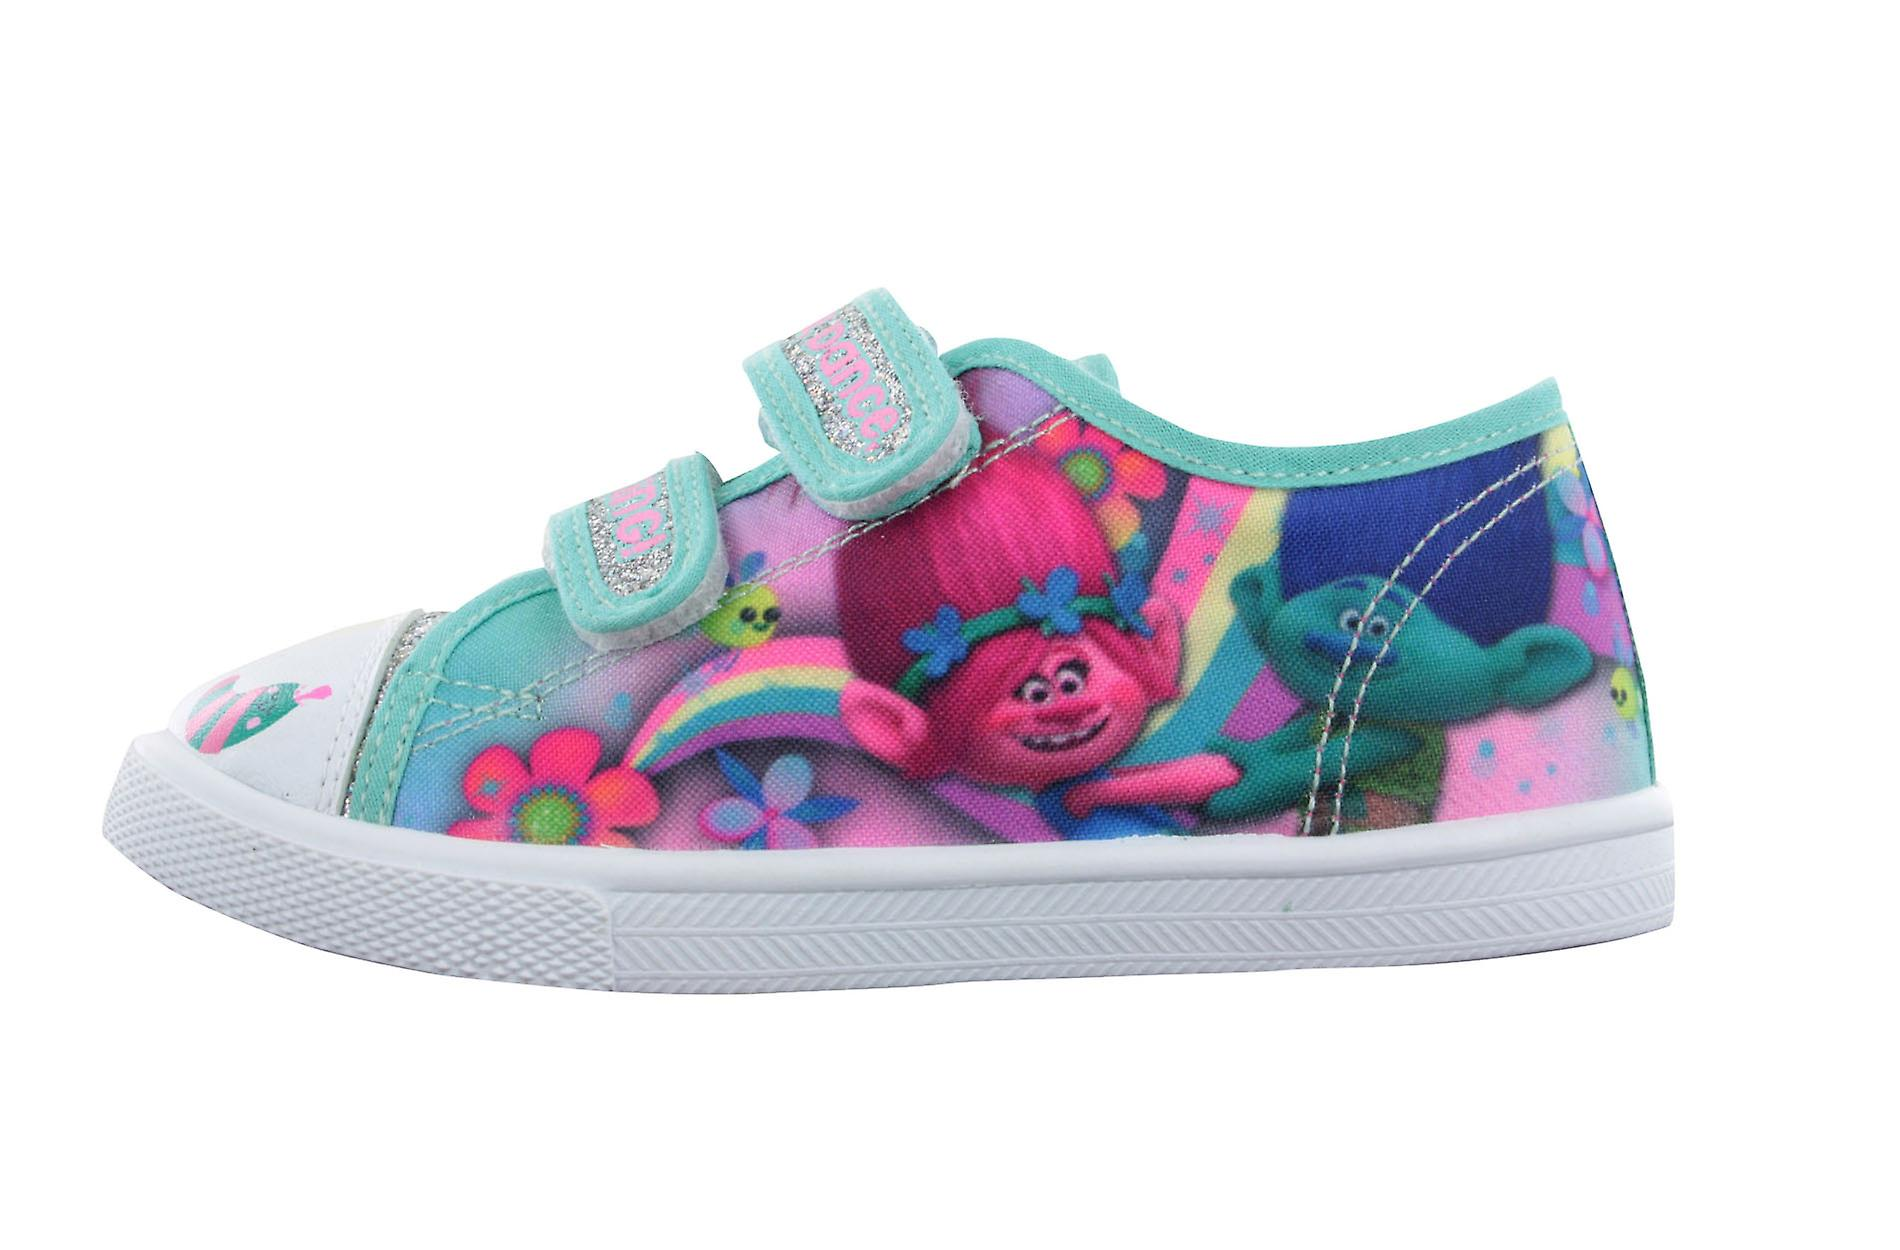 cheap for discount a723d 7b20d Girls Trolls Green Pink Silver Glitter Canvas Trainers Sport Shoes UK Sizes  6-12